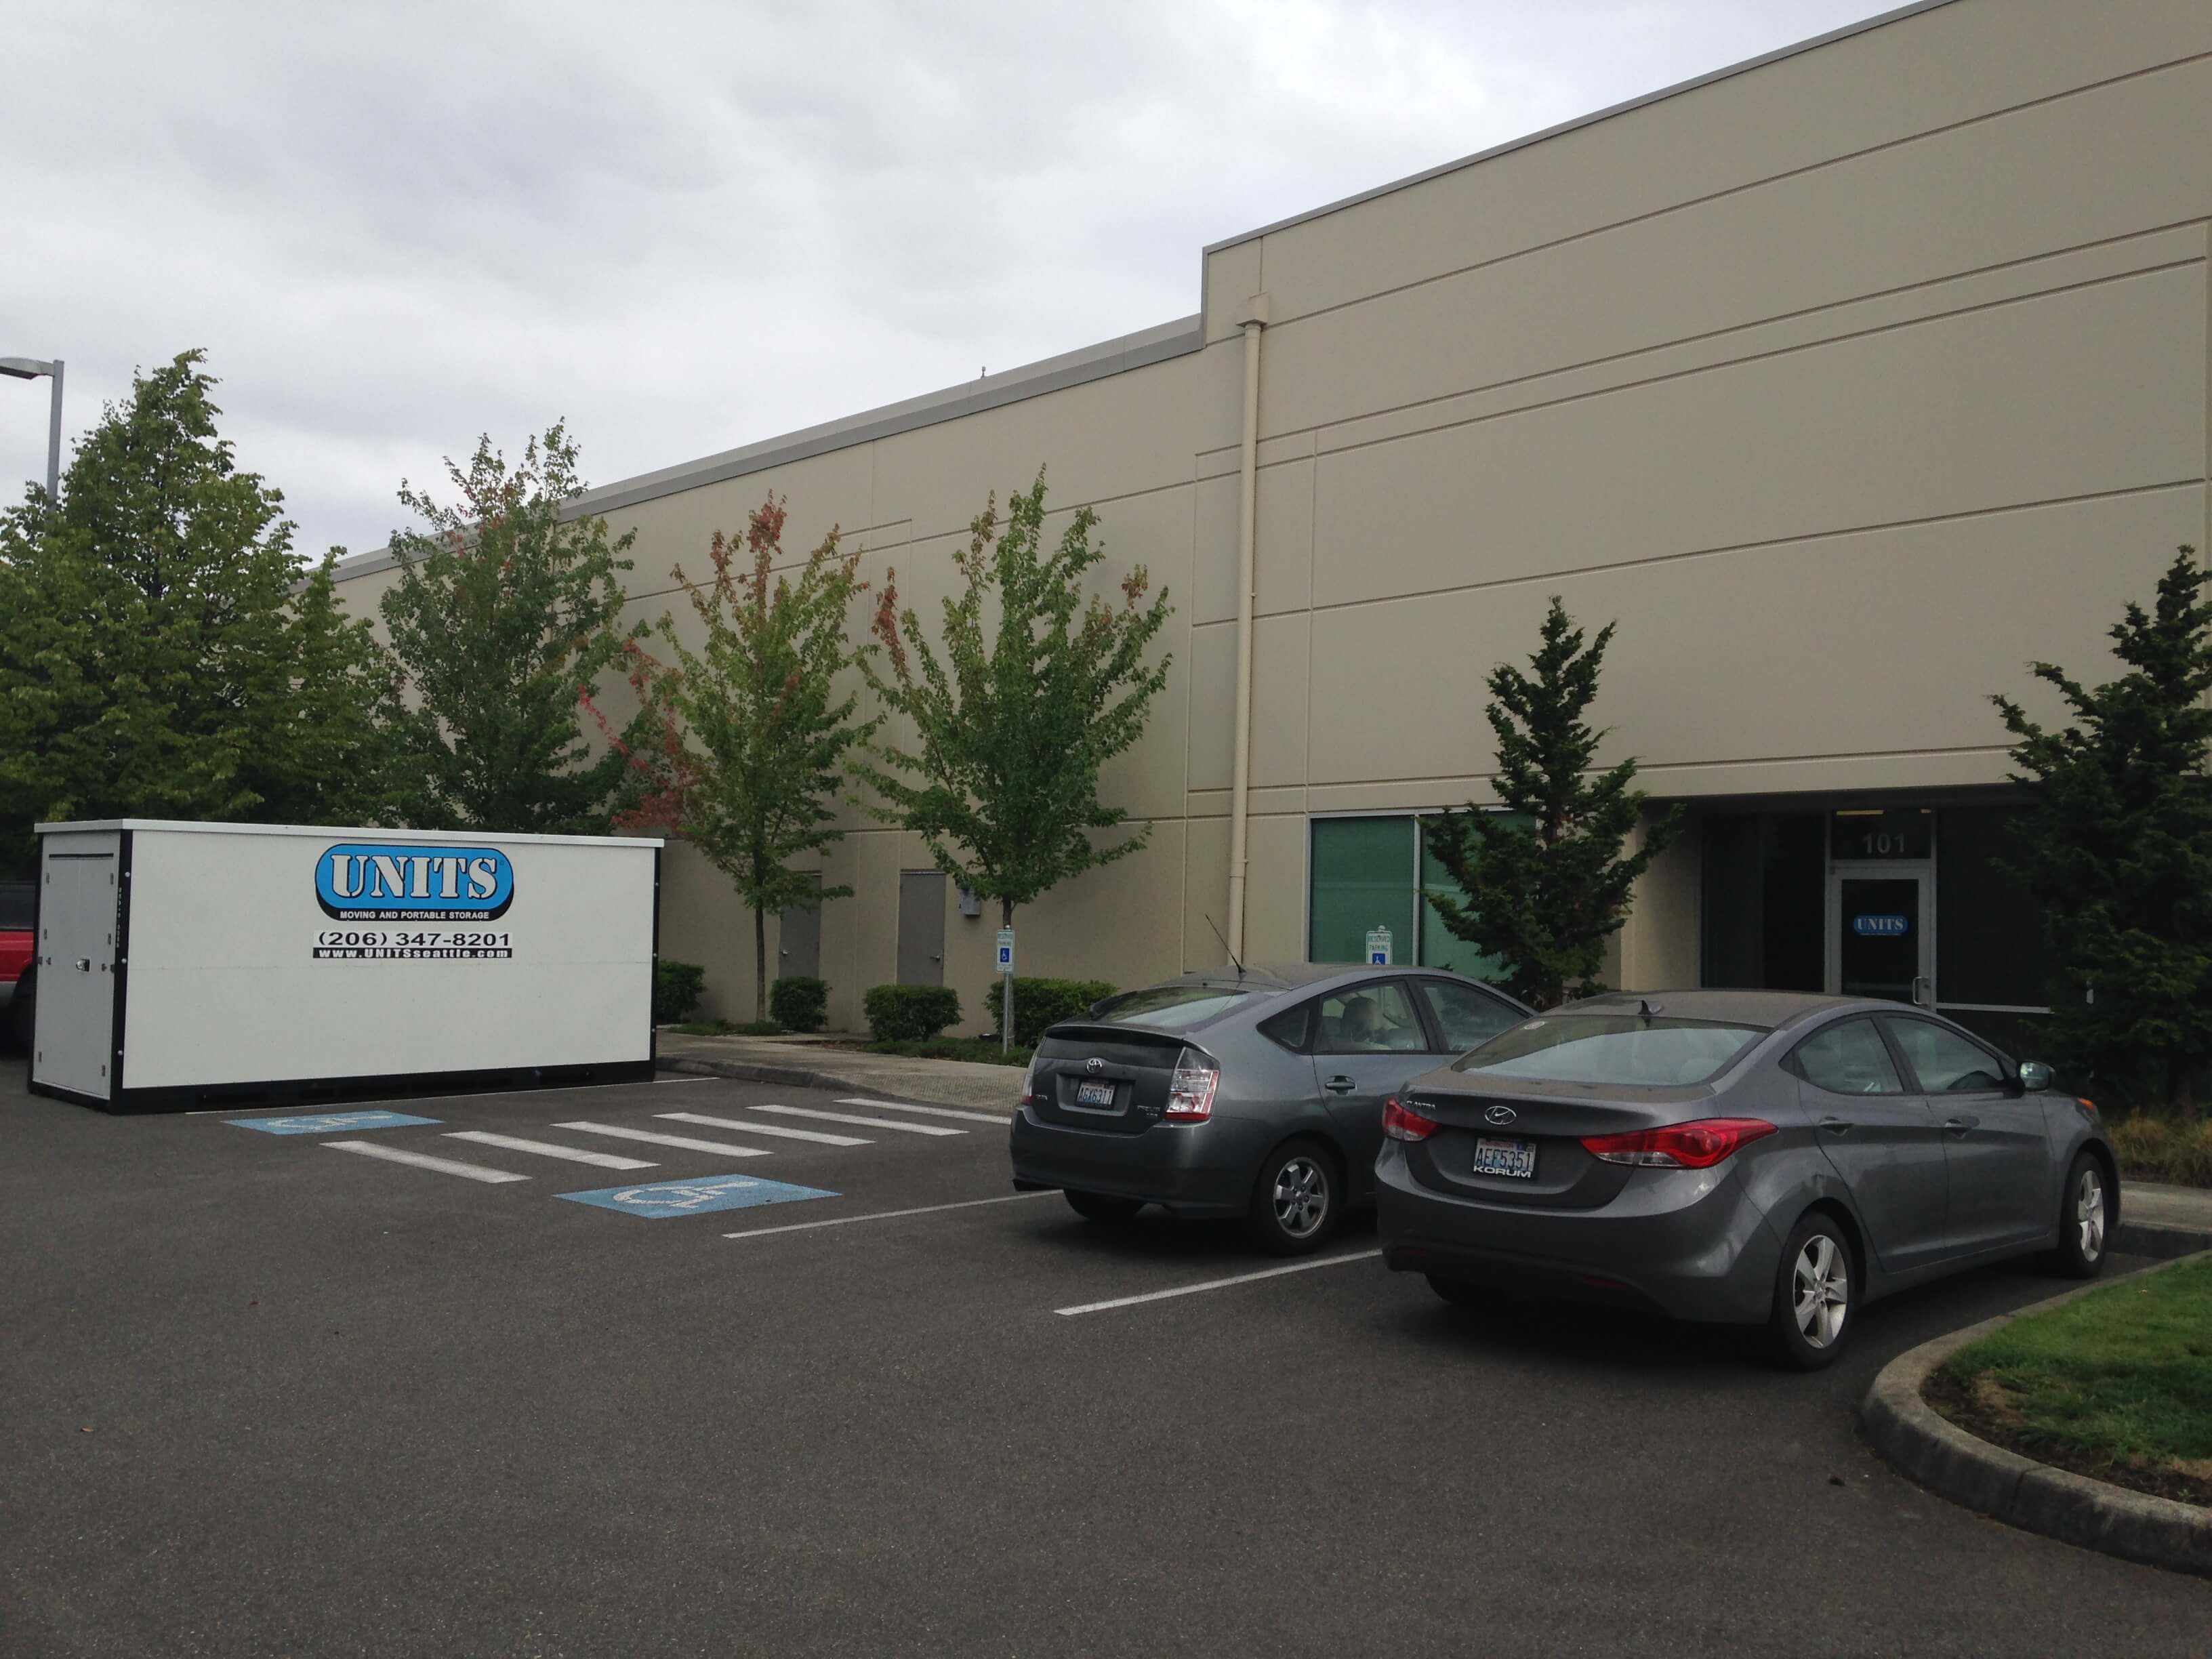 Our Gallery . & Portable Storage UNITS® u0026 Containers Seattle WA - UNITS Storage ...